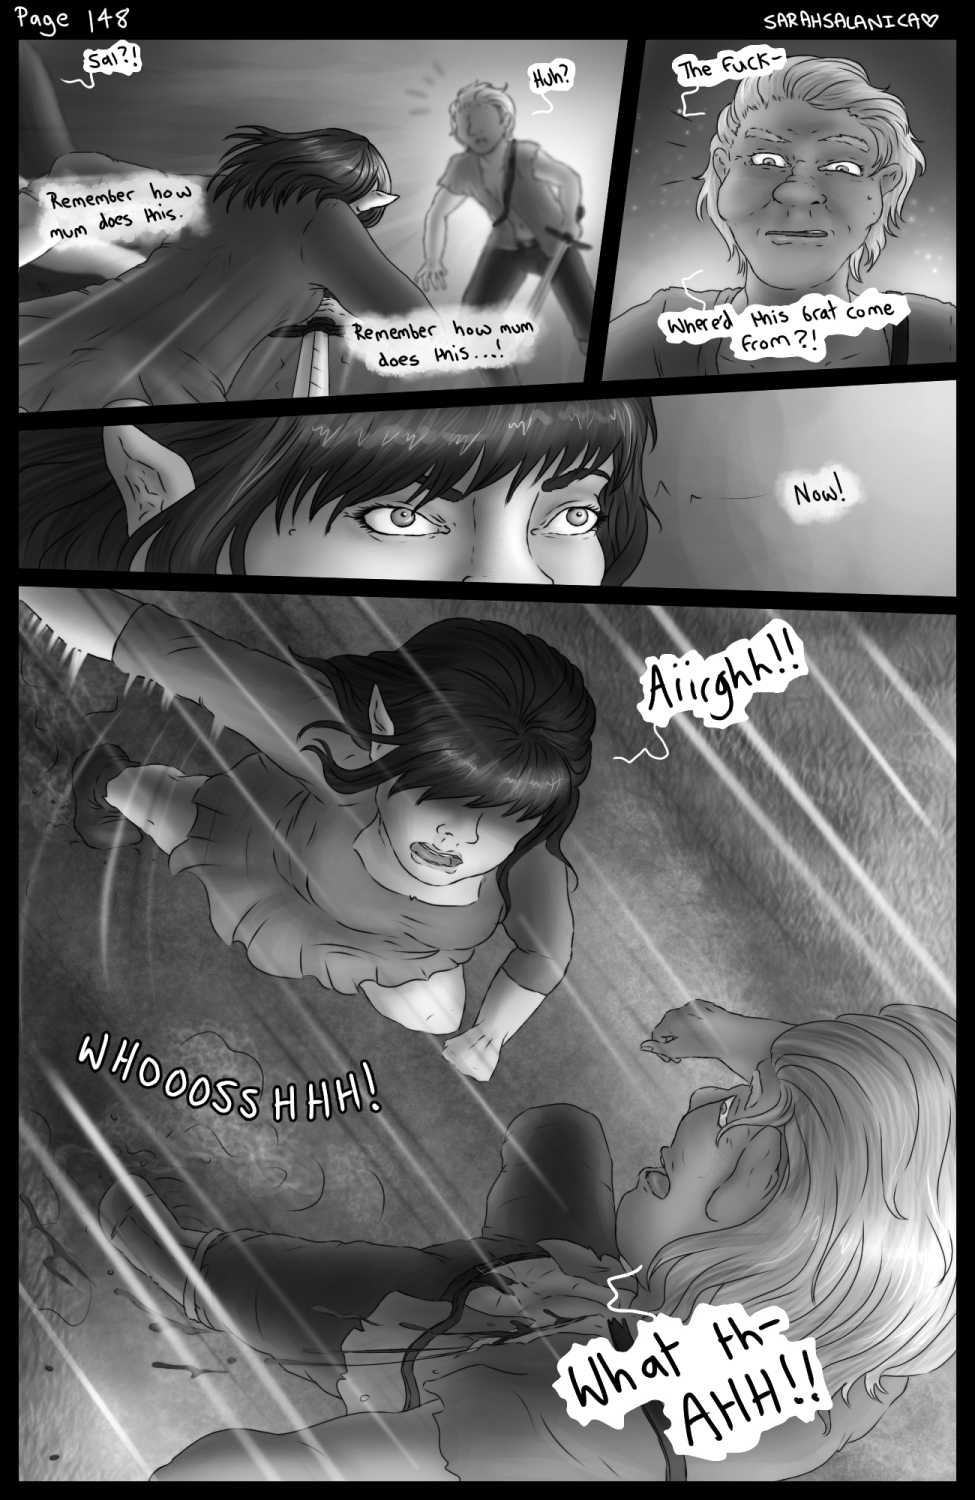 Can('t) Buy Love- Chapter 4 Page 148